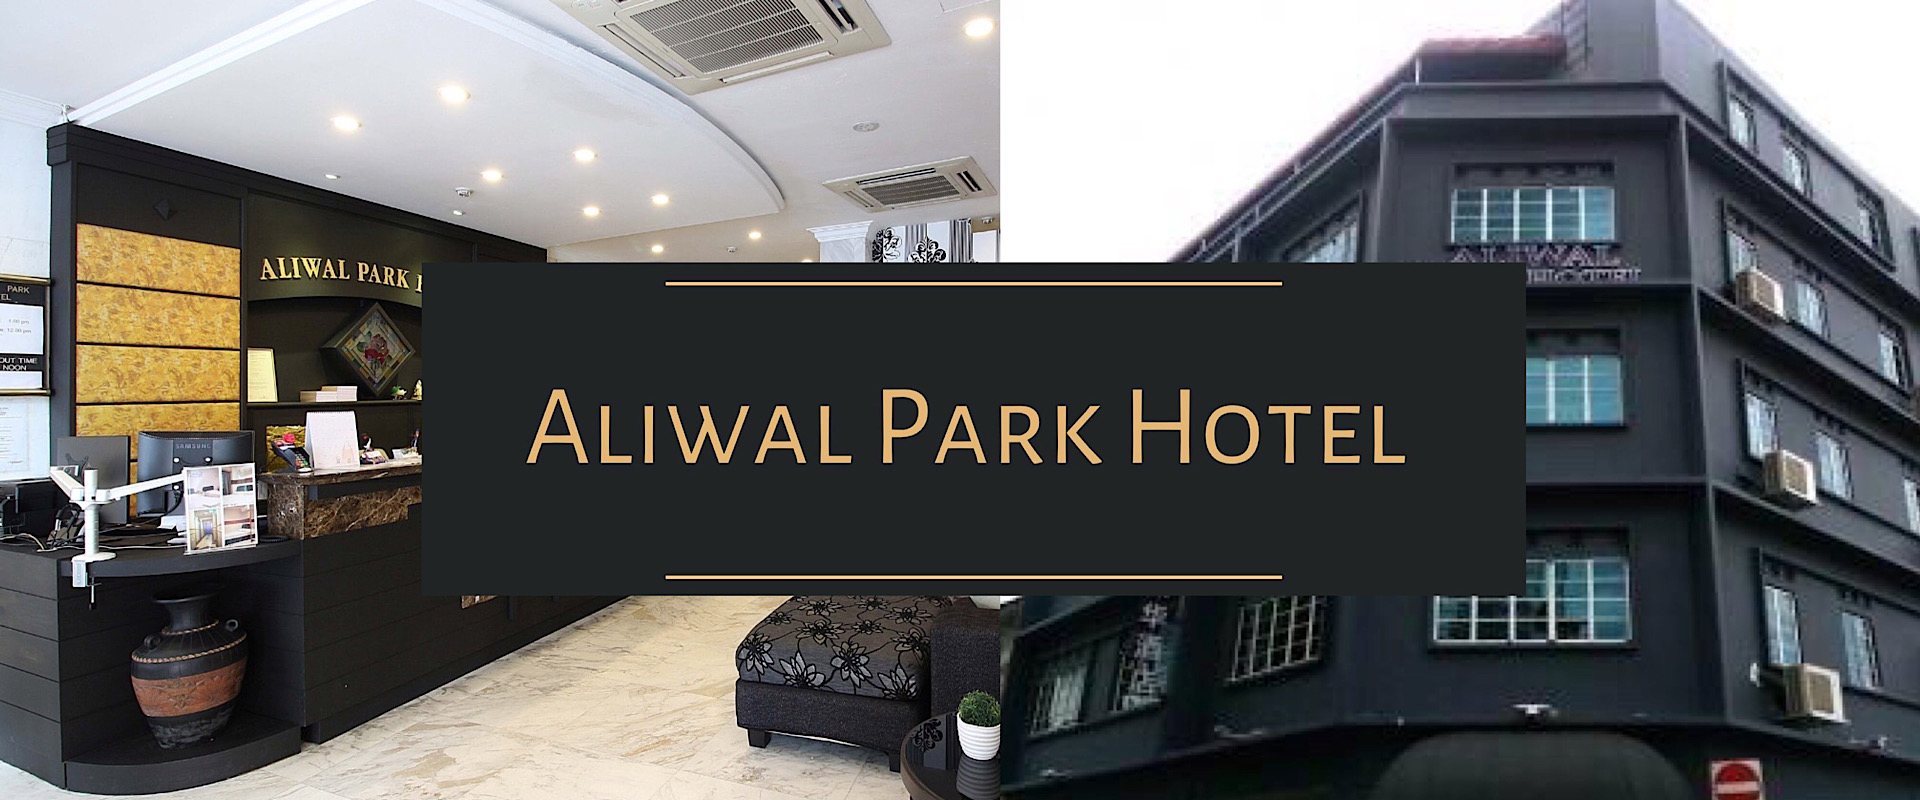 about-aliwal-park-hotel